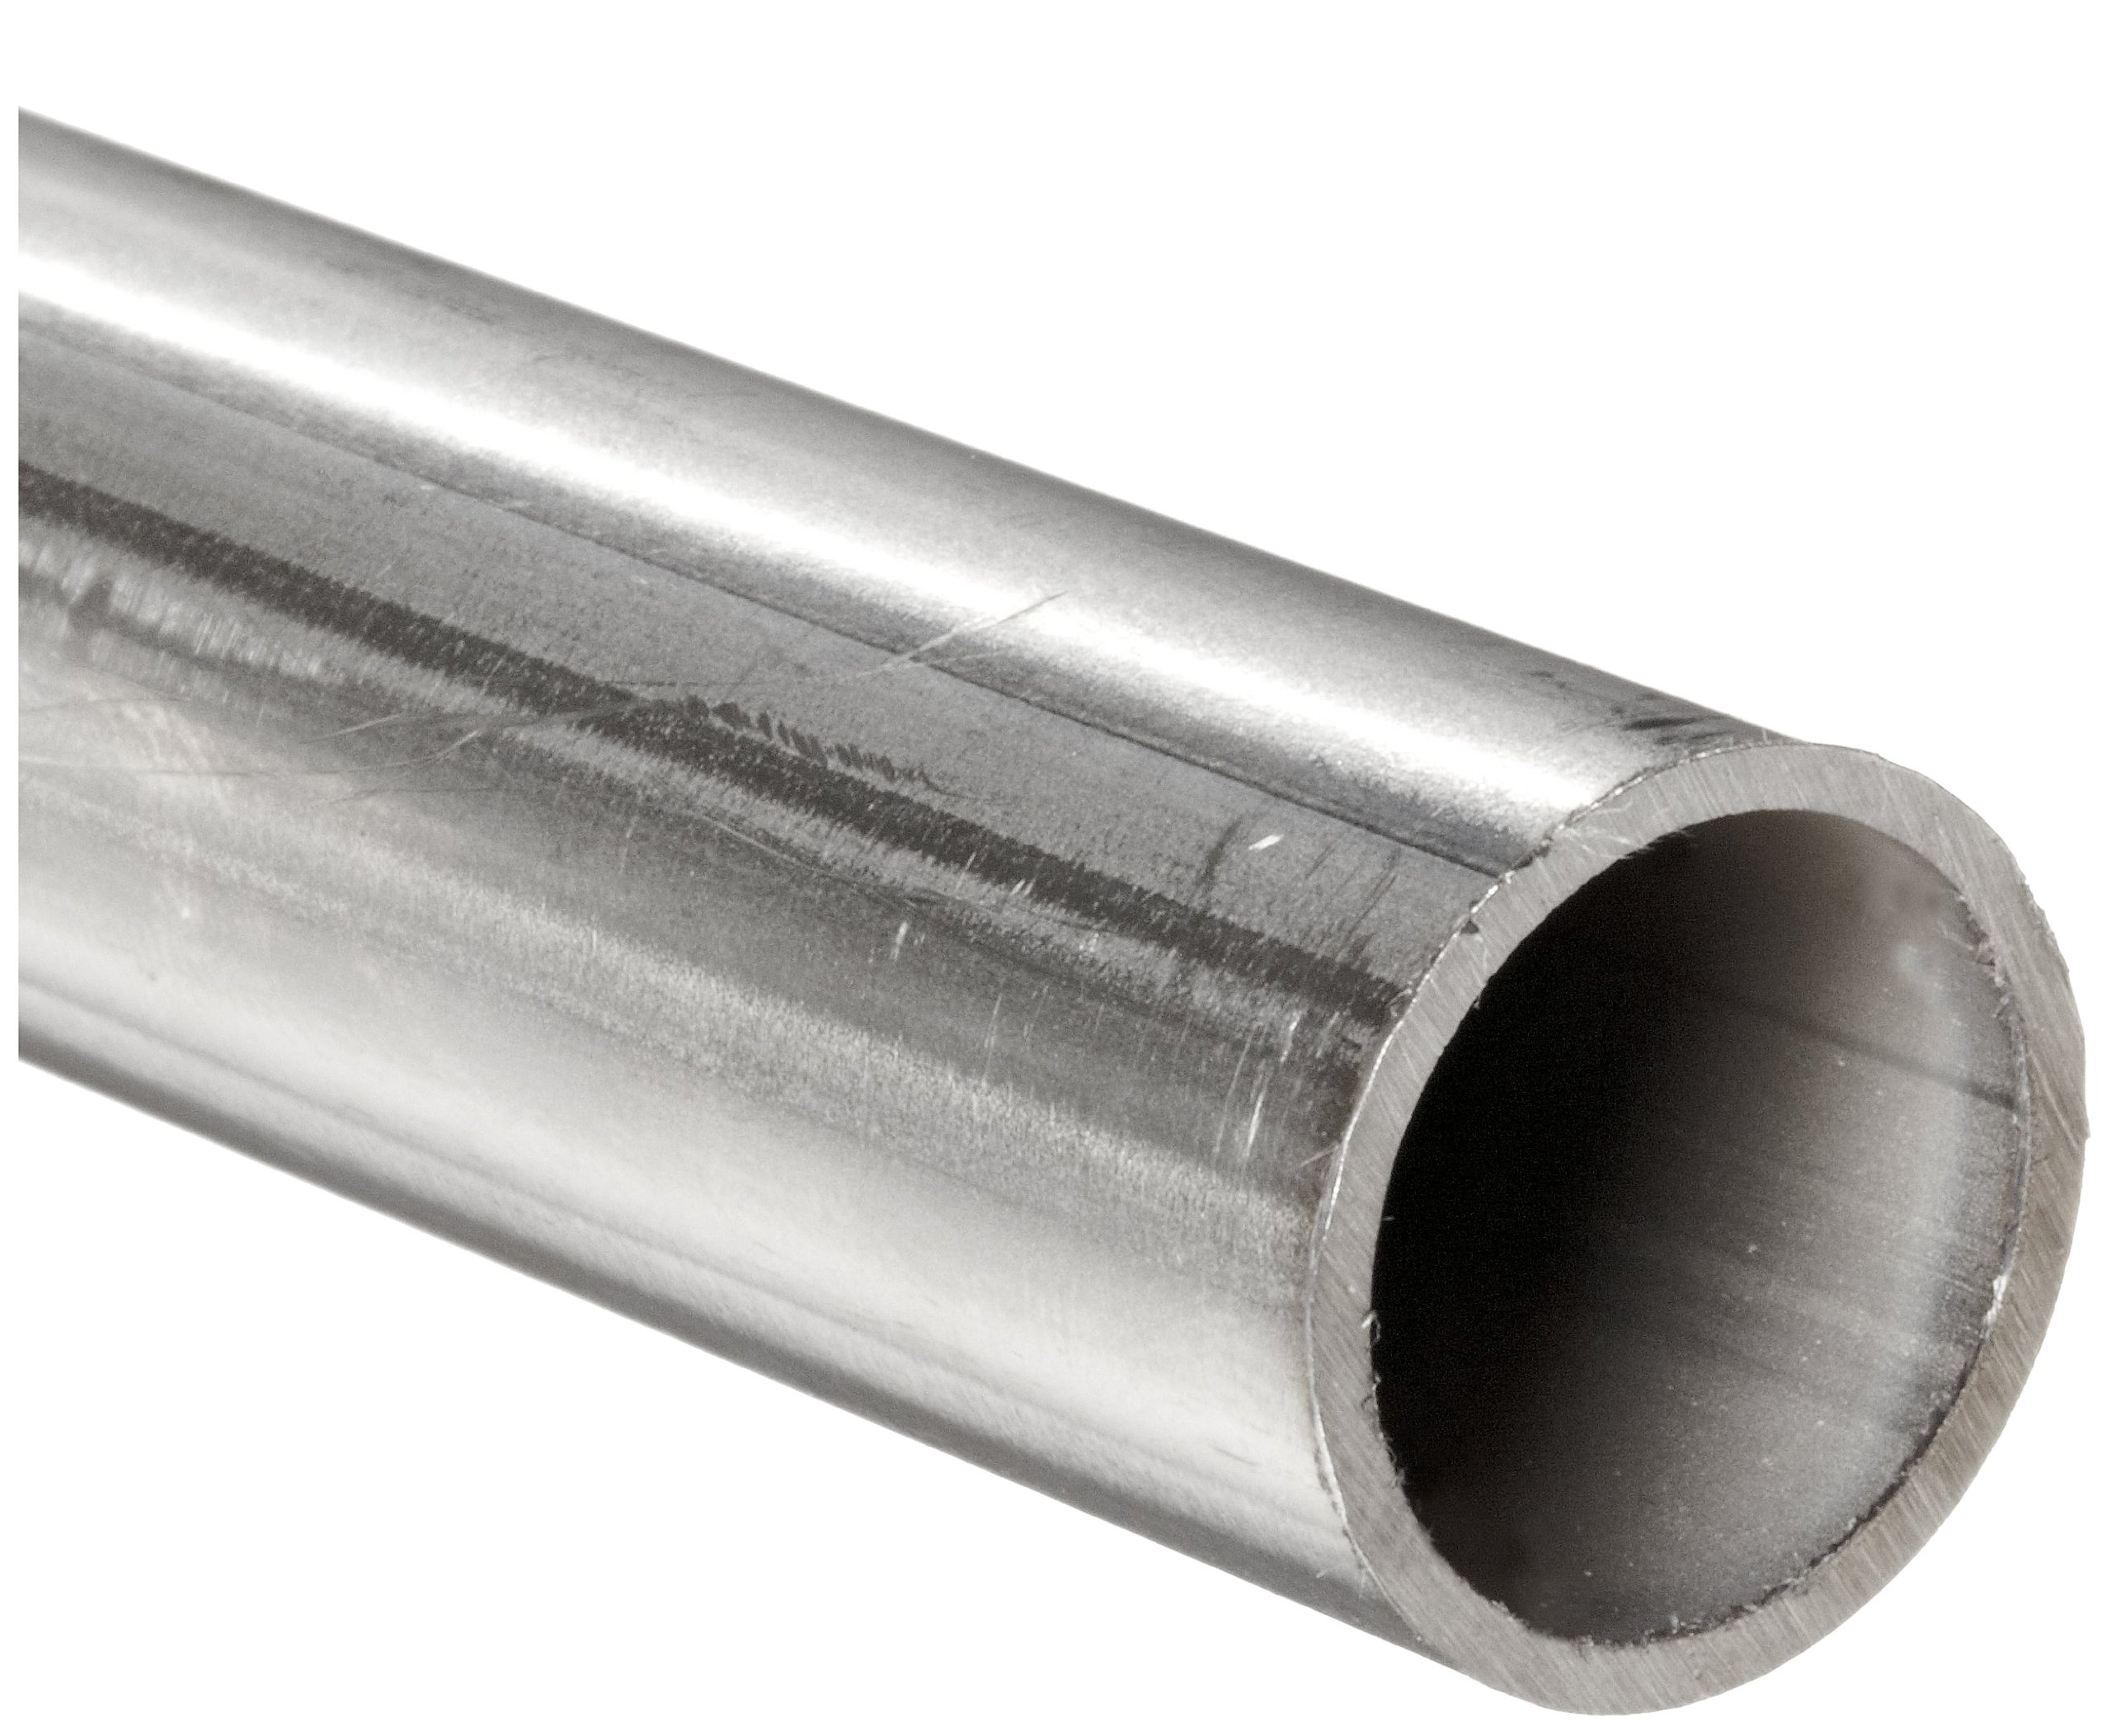 Stainless Steel 304L Welded Round Tubing, 1/2'' OD, 0.43'' ID, 0.035'' Wall, 36'' Length